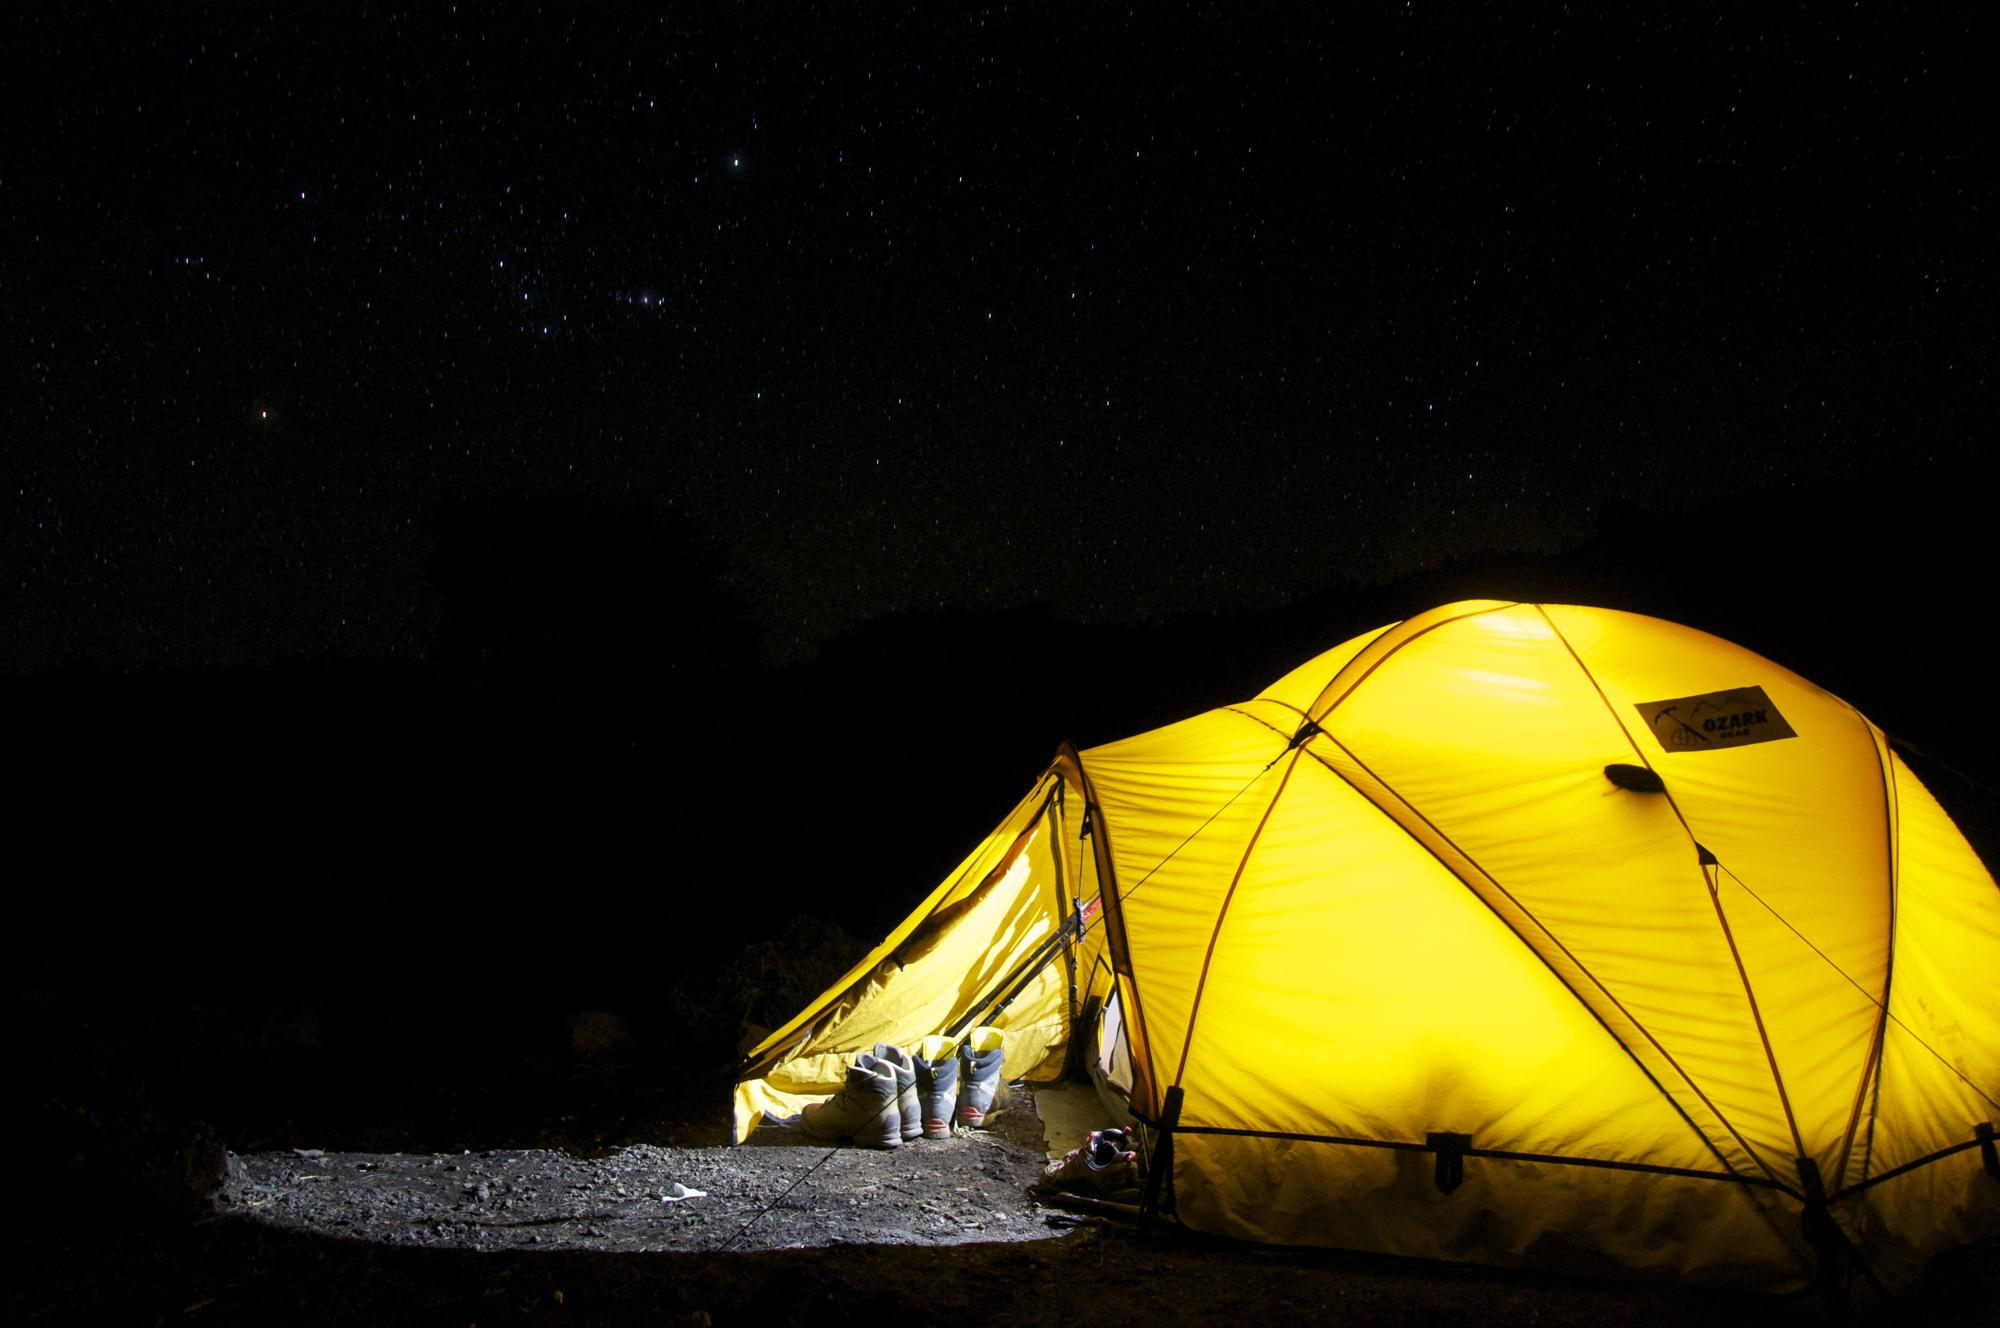 Wild Camping in the Dark